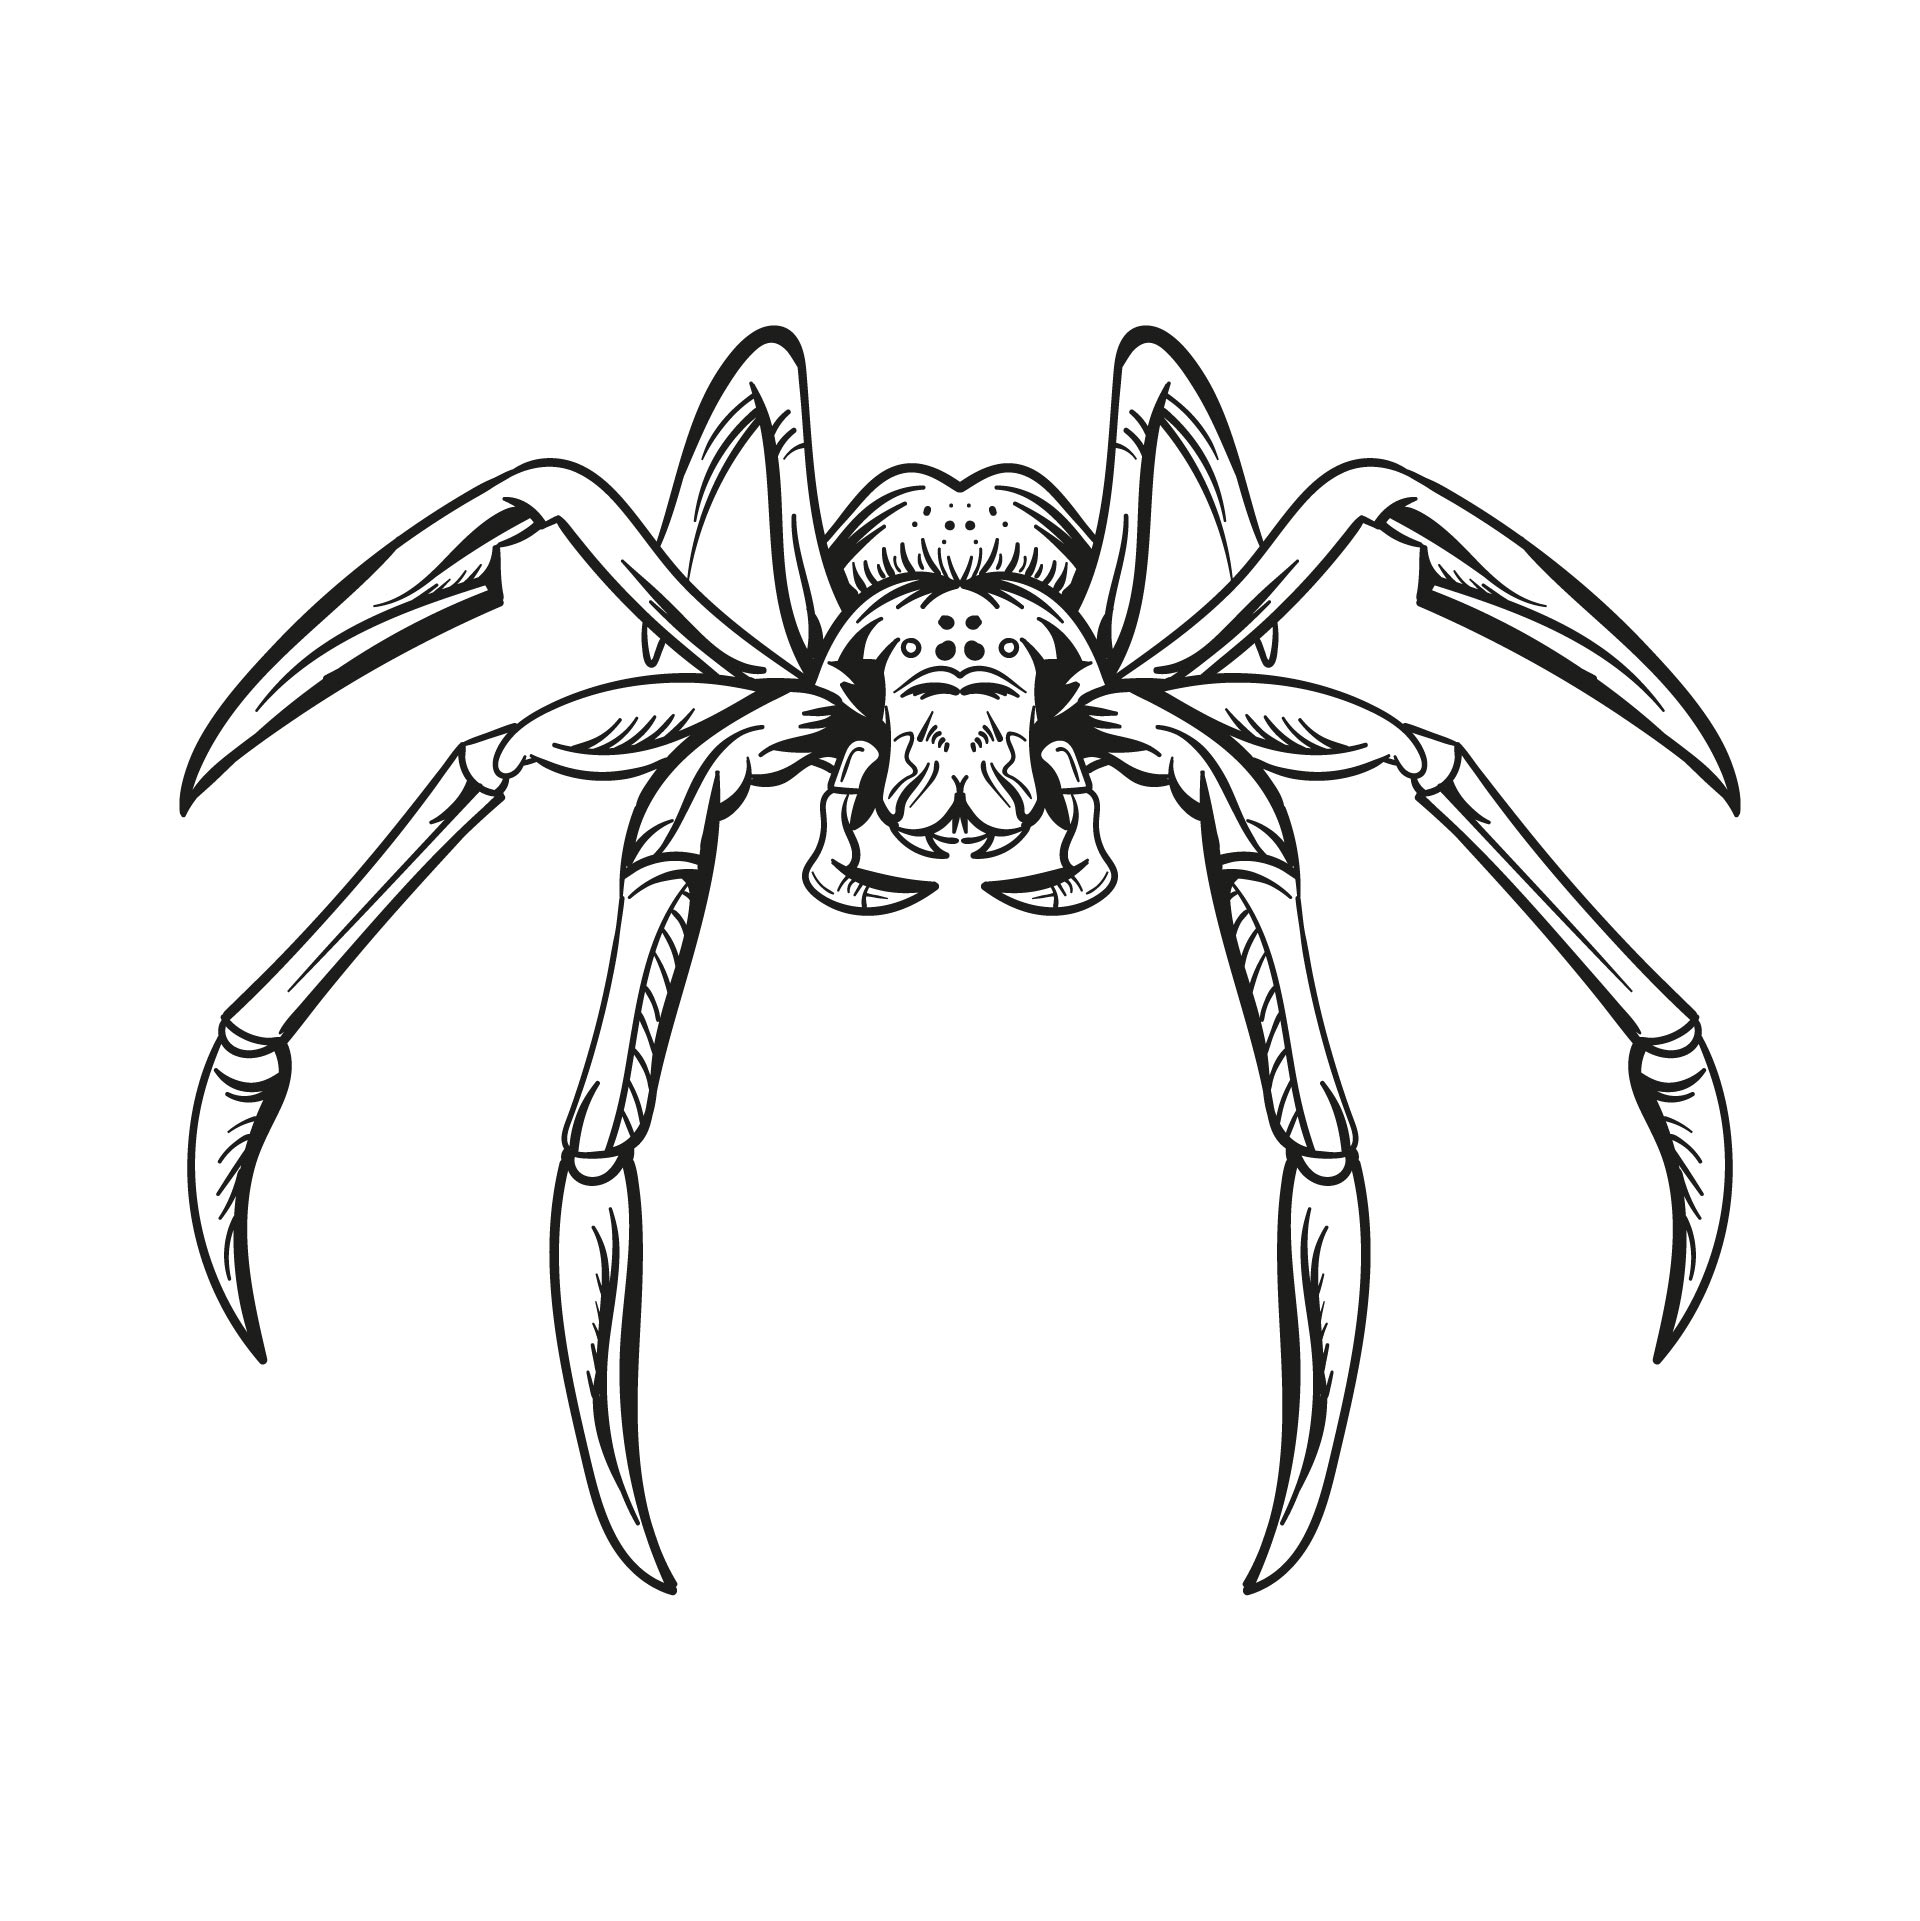 Spiders For Halloween Printable